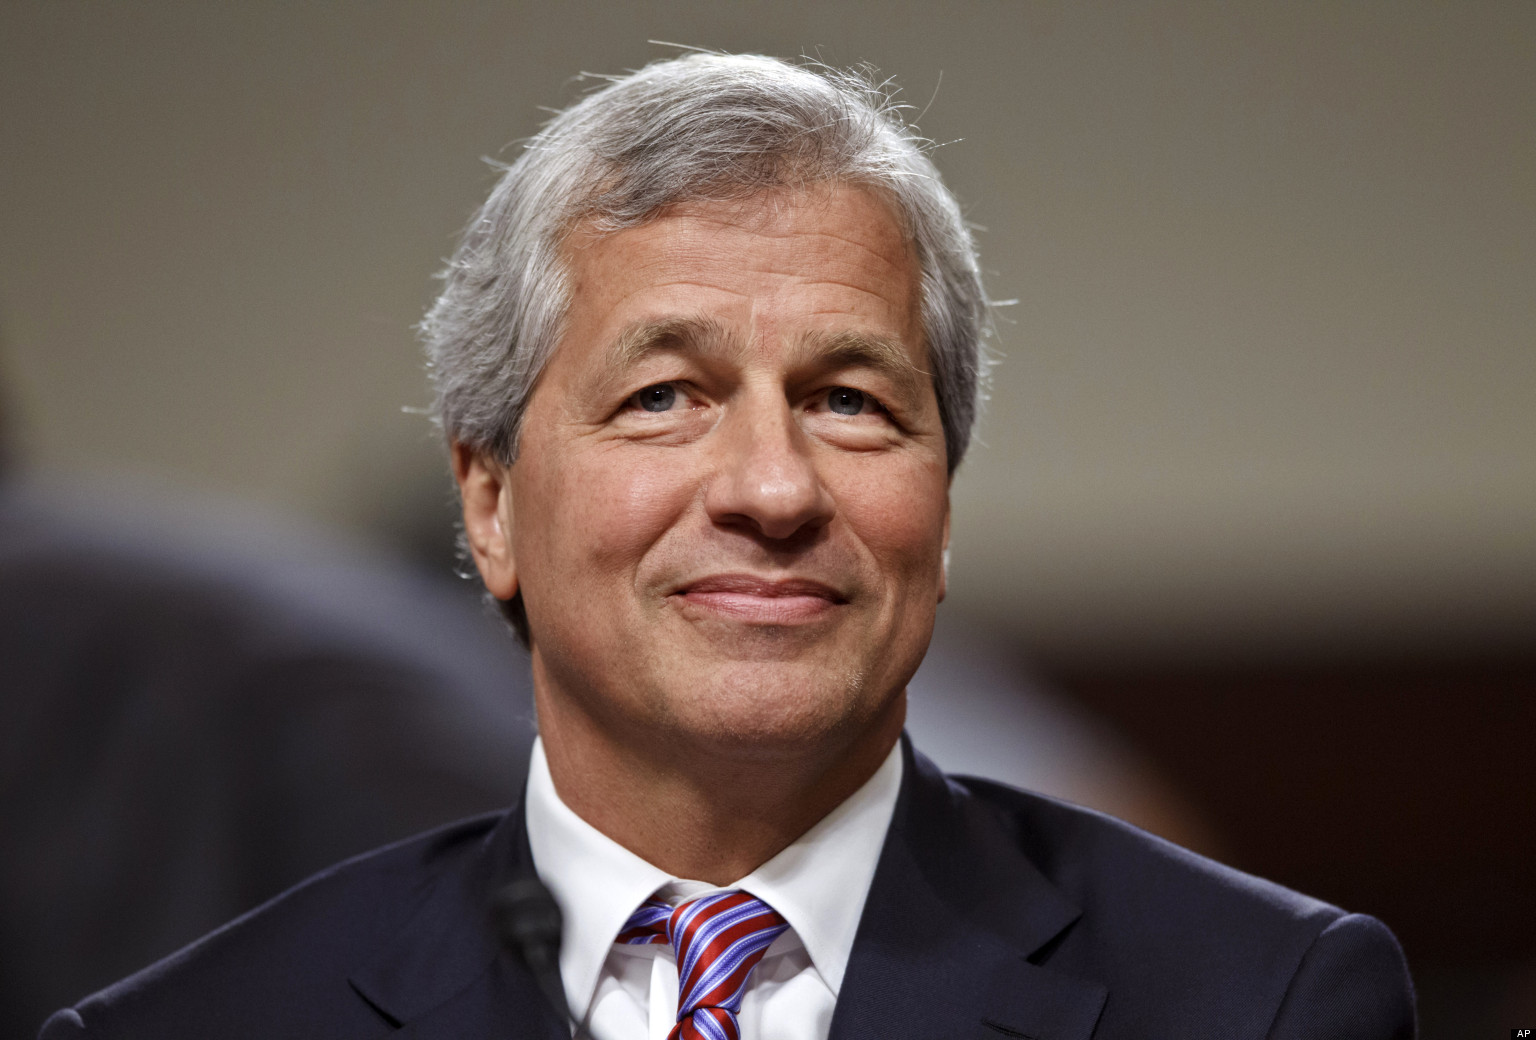 Jamie Dimon says Americans are being manipulated but there's hope